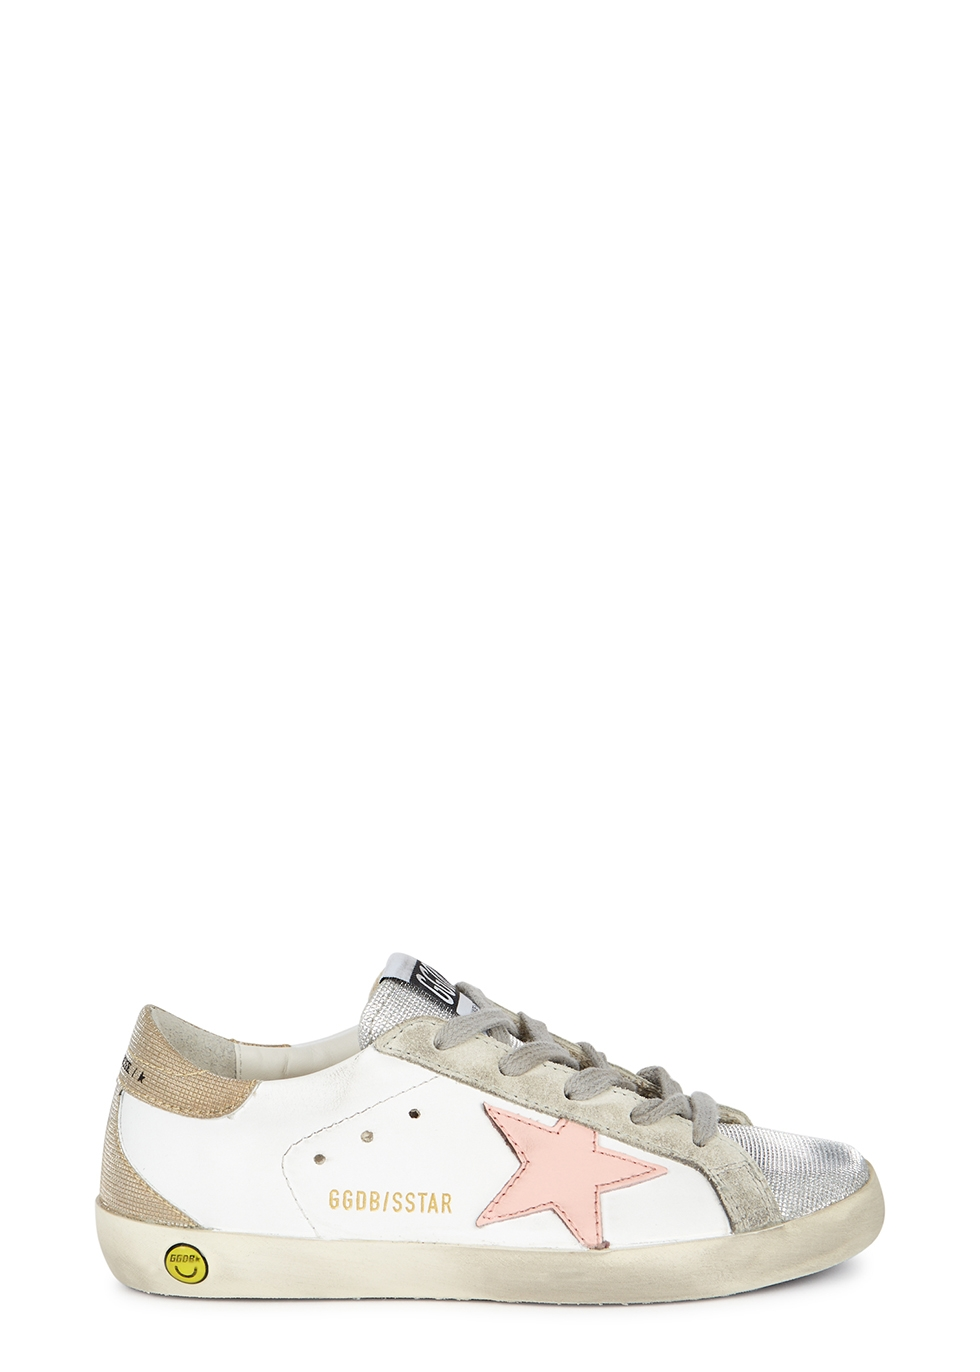 Superstar glittered leather sneakers (IT28-IT35)